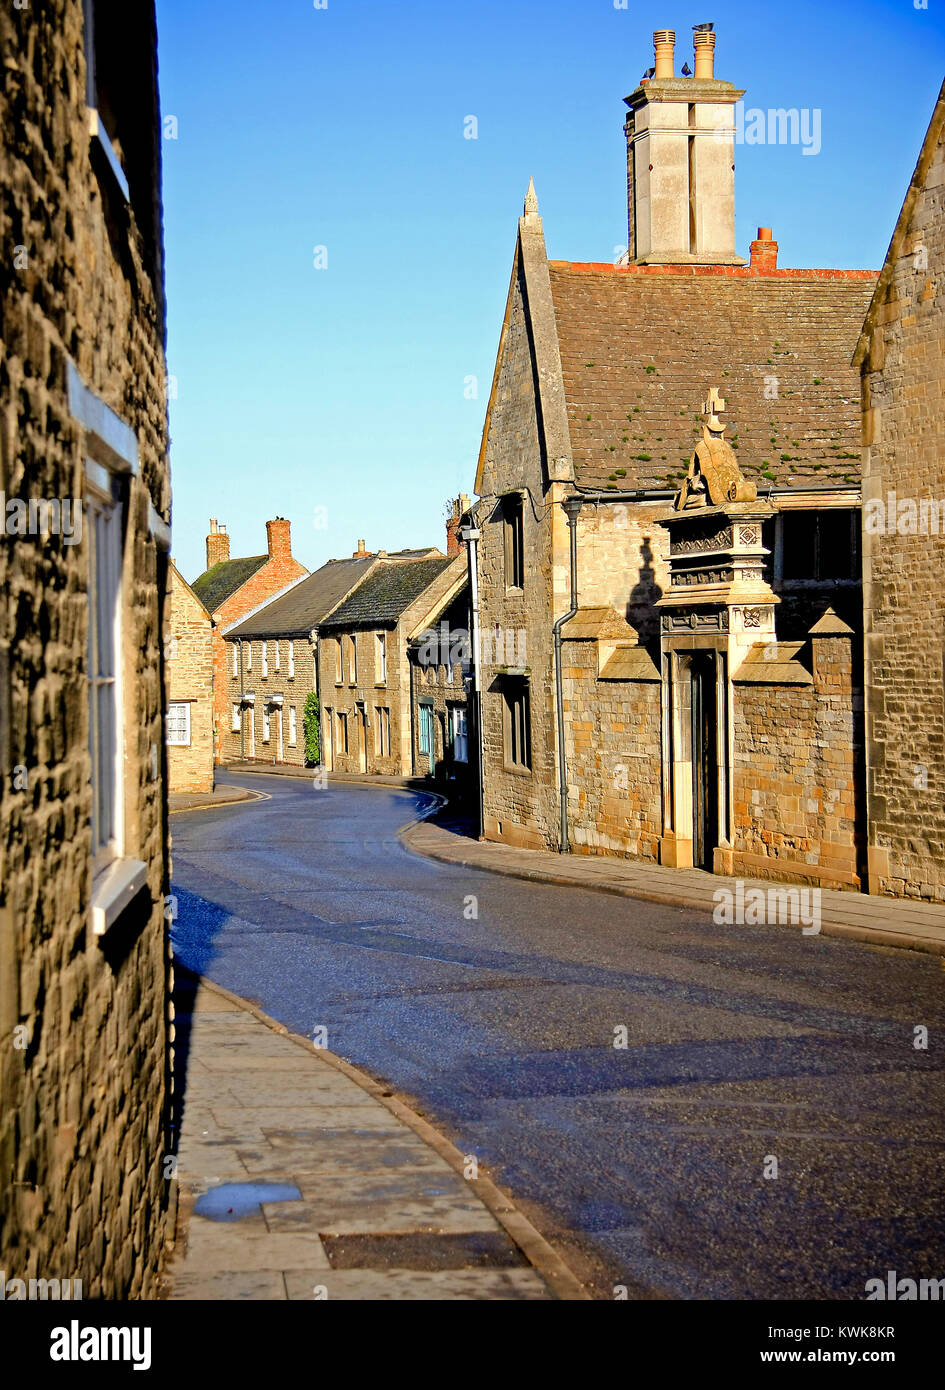 The main road through the small town of Oundle,Northamptonshire - Stock Image